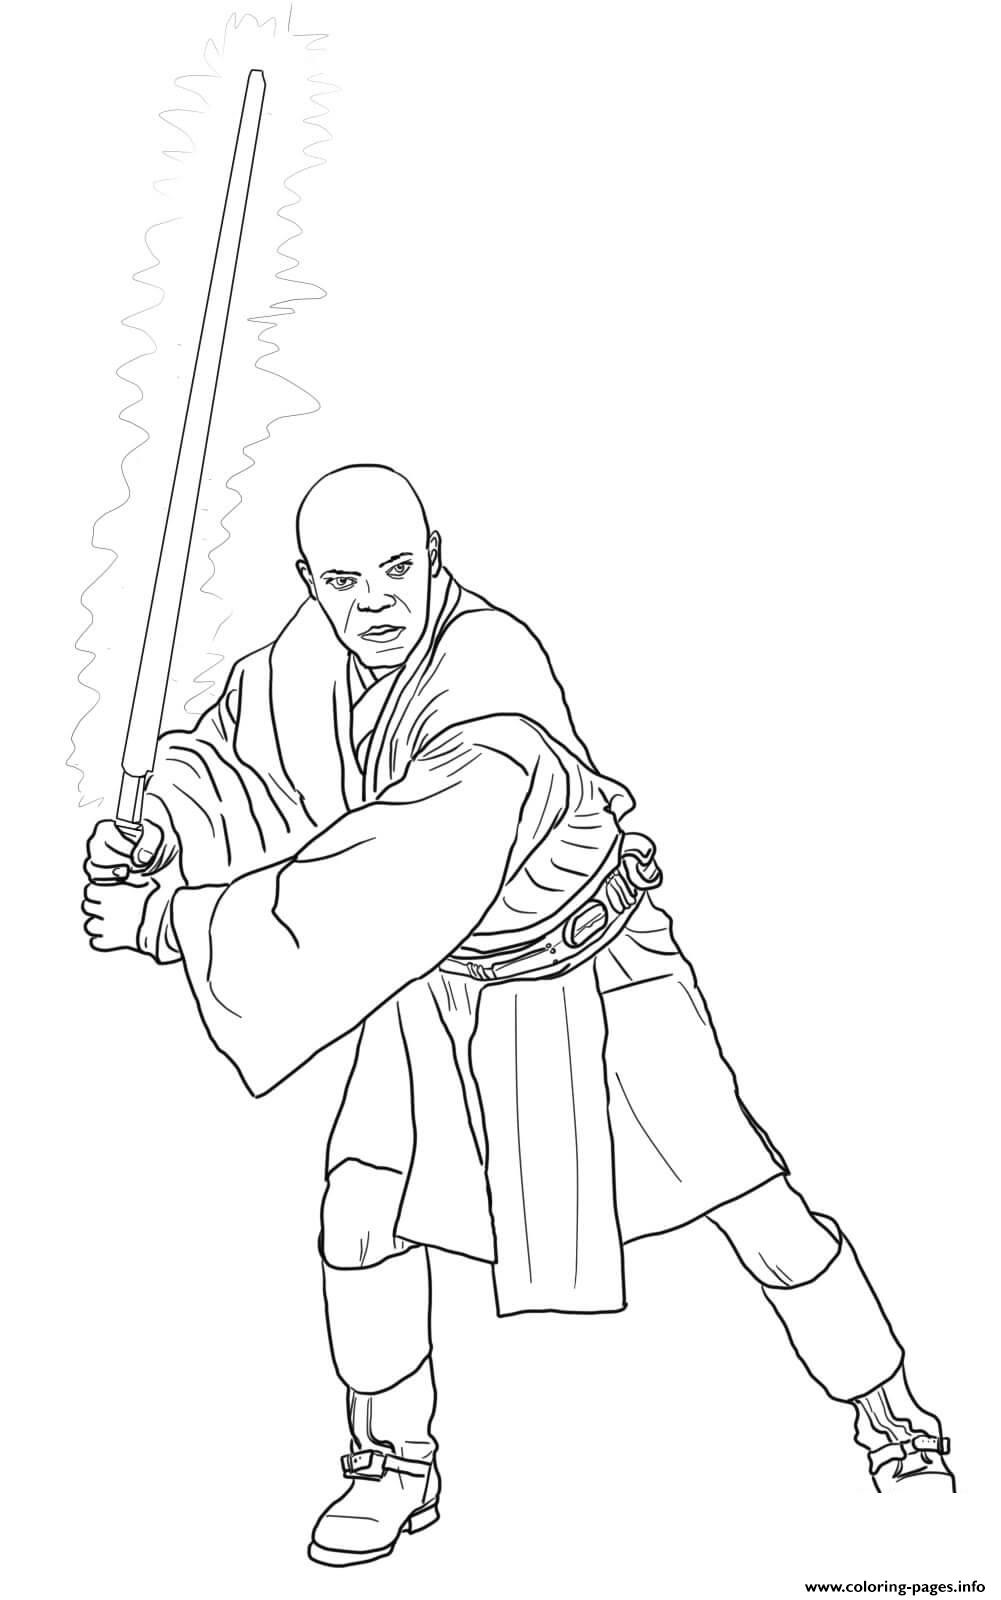 Mace Windu Star Wars Episode II Attack Of The Clones coloring pages